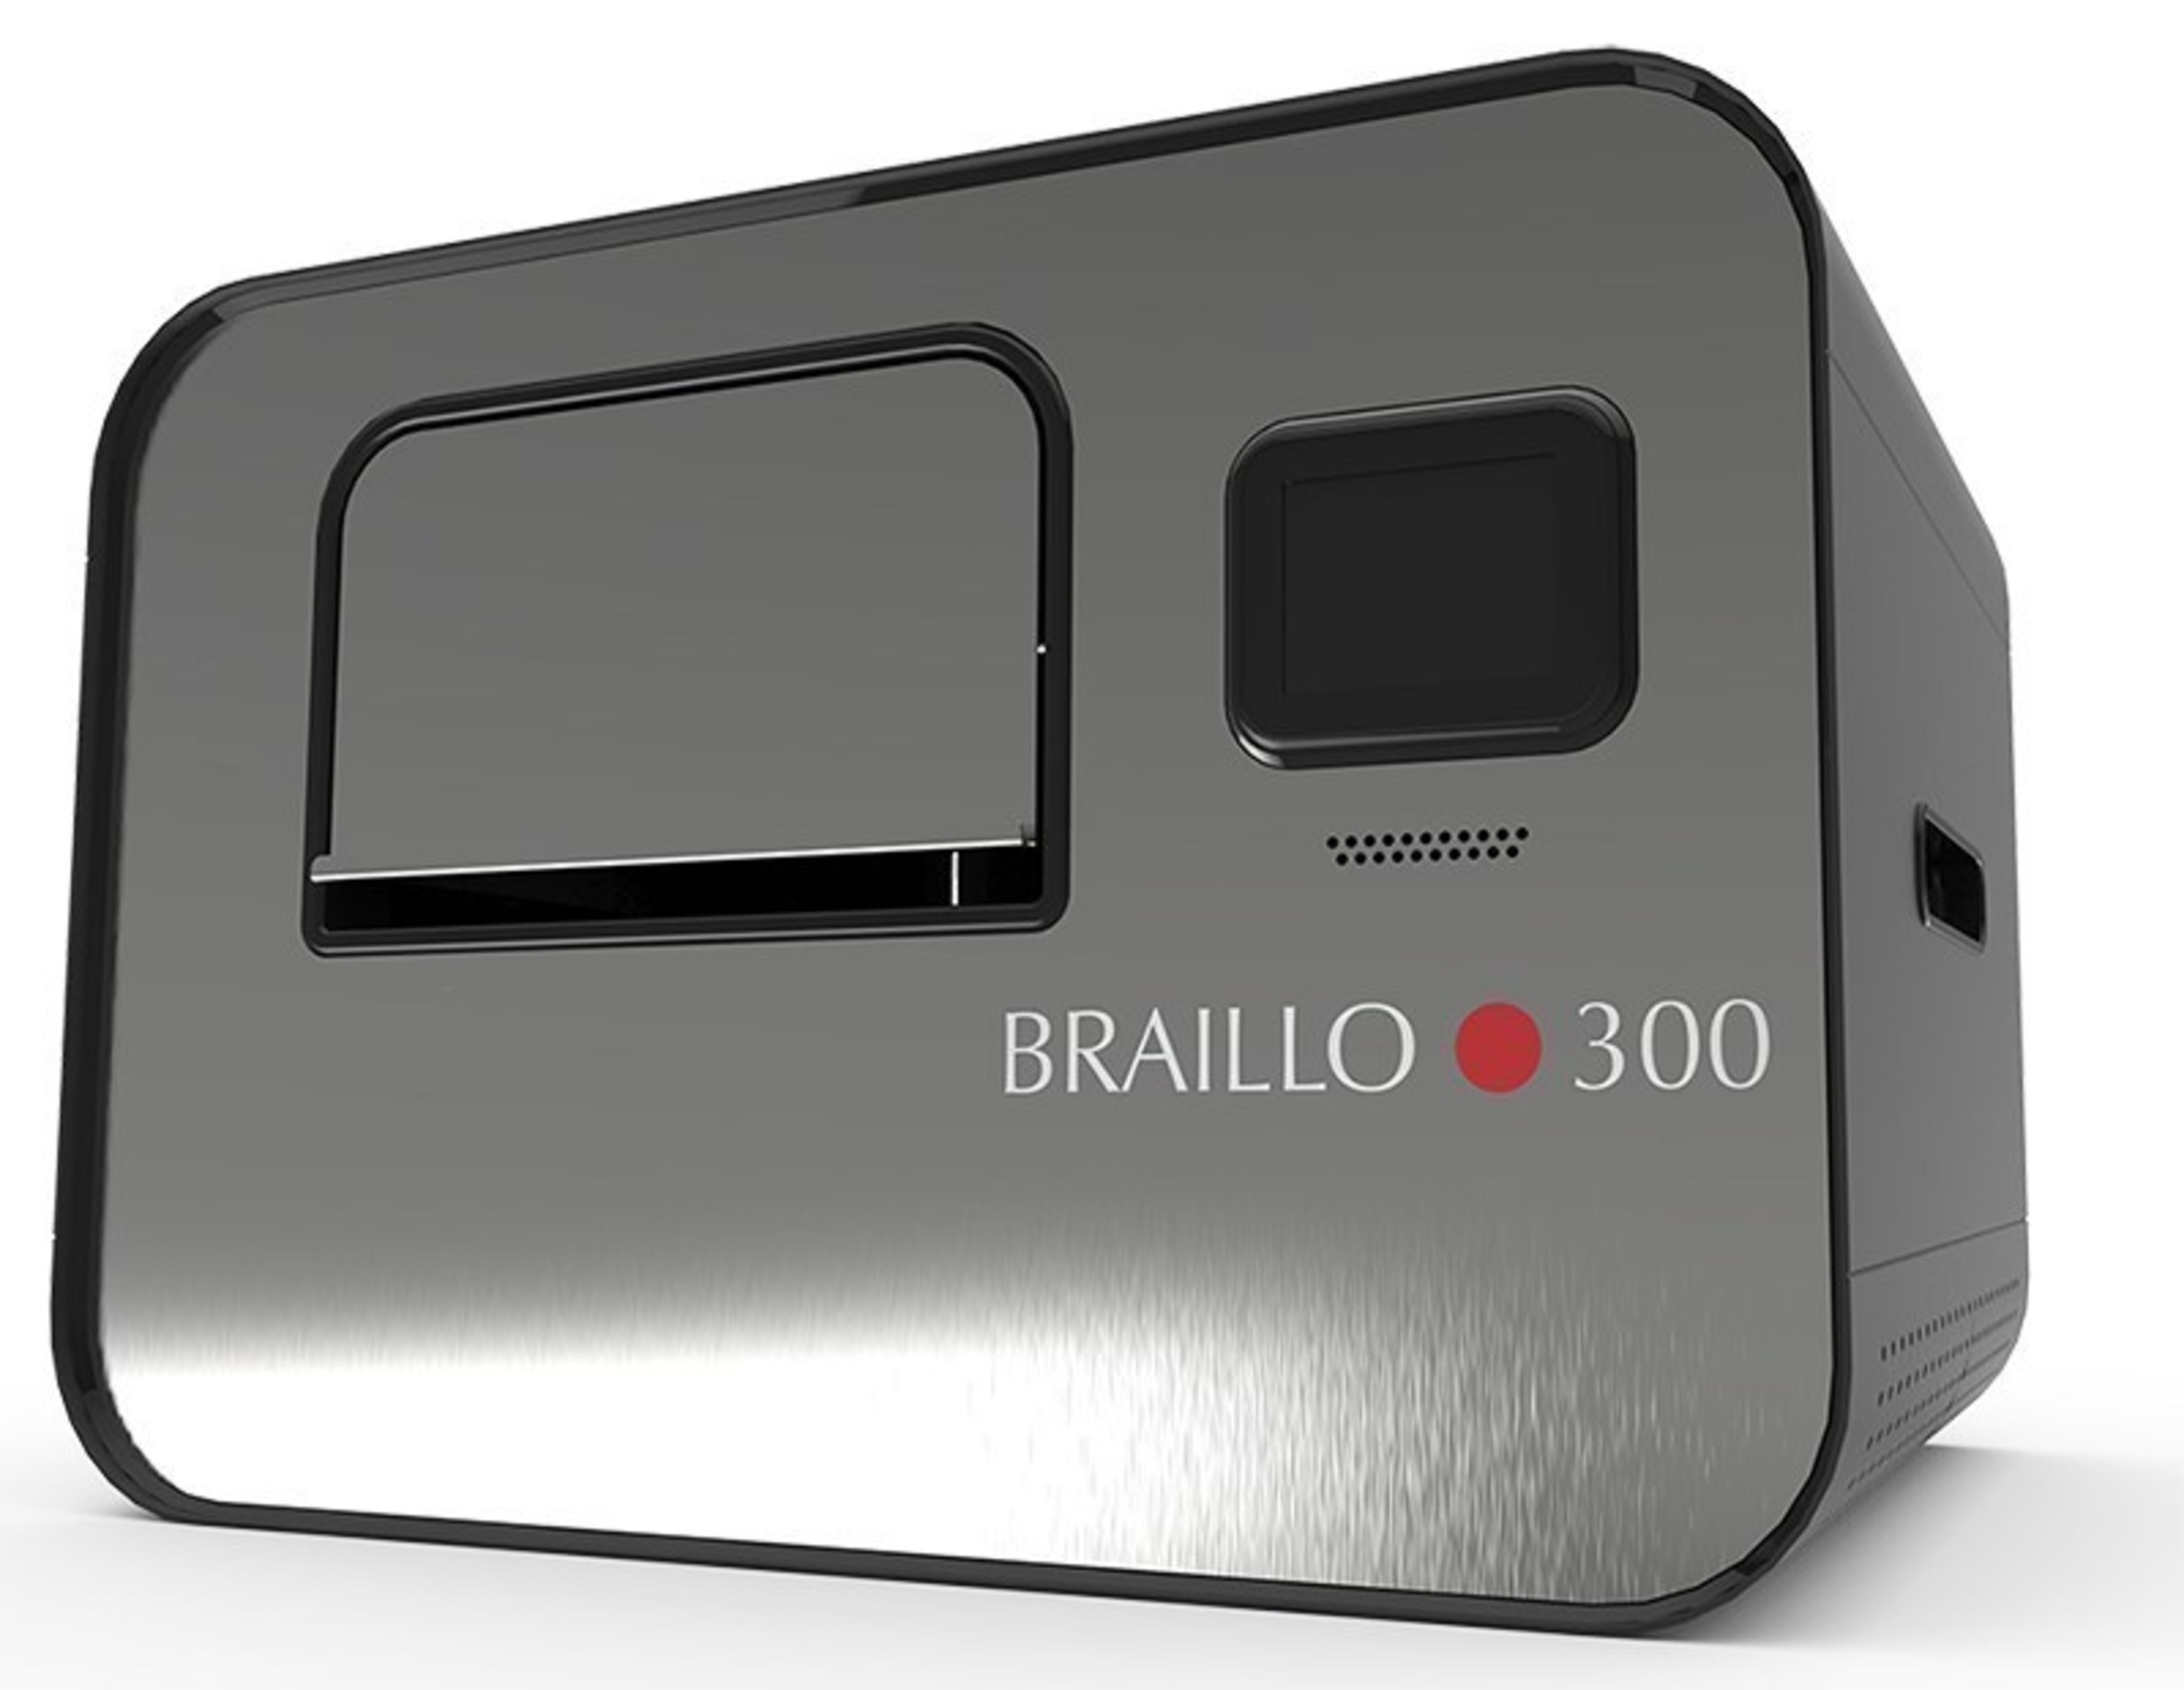 Braillo Norway Introduces Newly Redesigned Braillo 300 Braille Printer